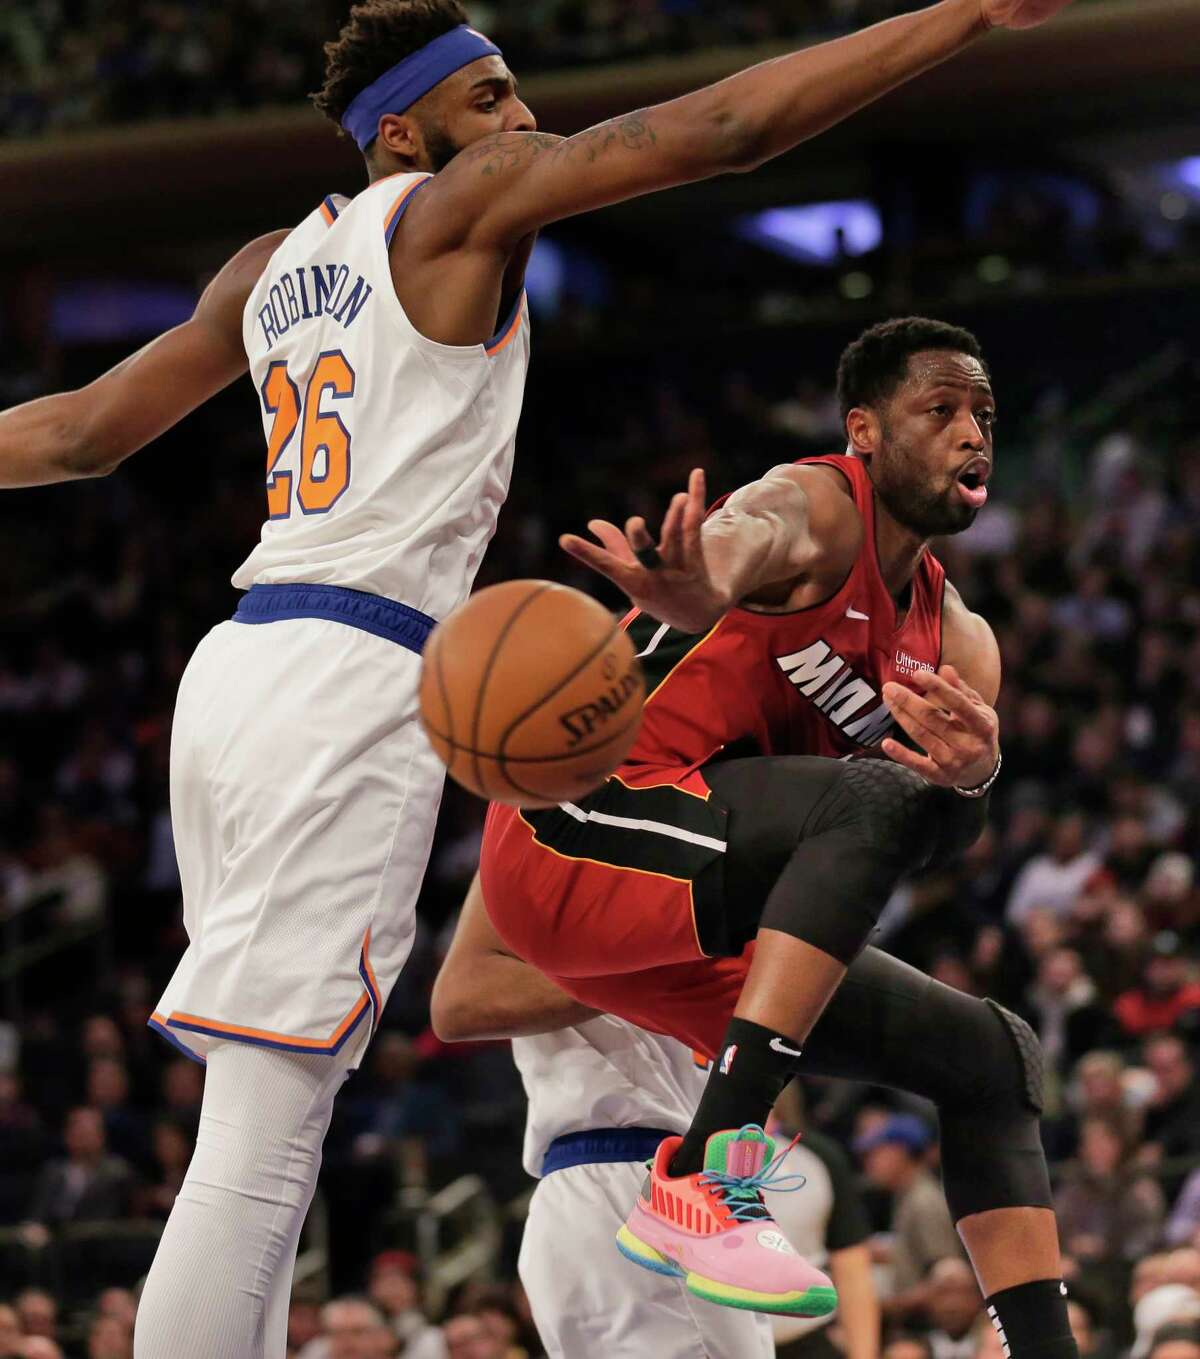 Miami Heat's Dwyane Wade, right, passes around New York Knicks' Mitchell Robinson during the first half of the NBA basketball game, Sunday, Jan. 27, 2019, in New York. (AP Photo/Seth Wenig)